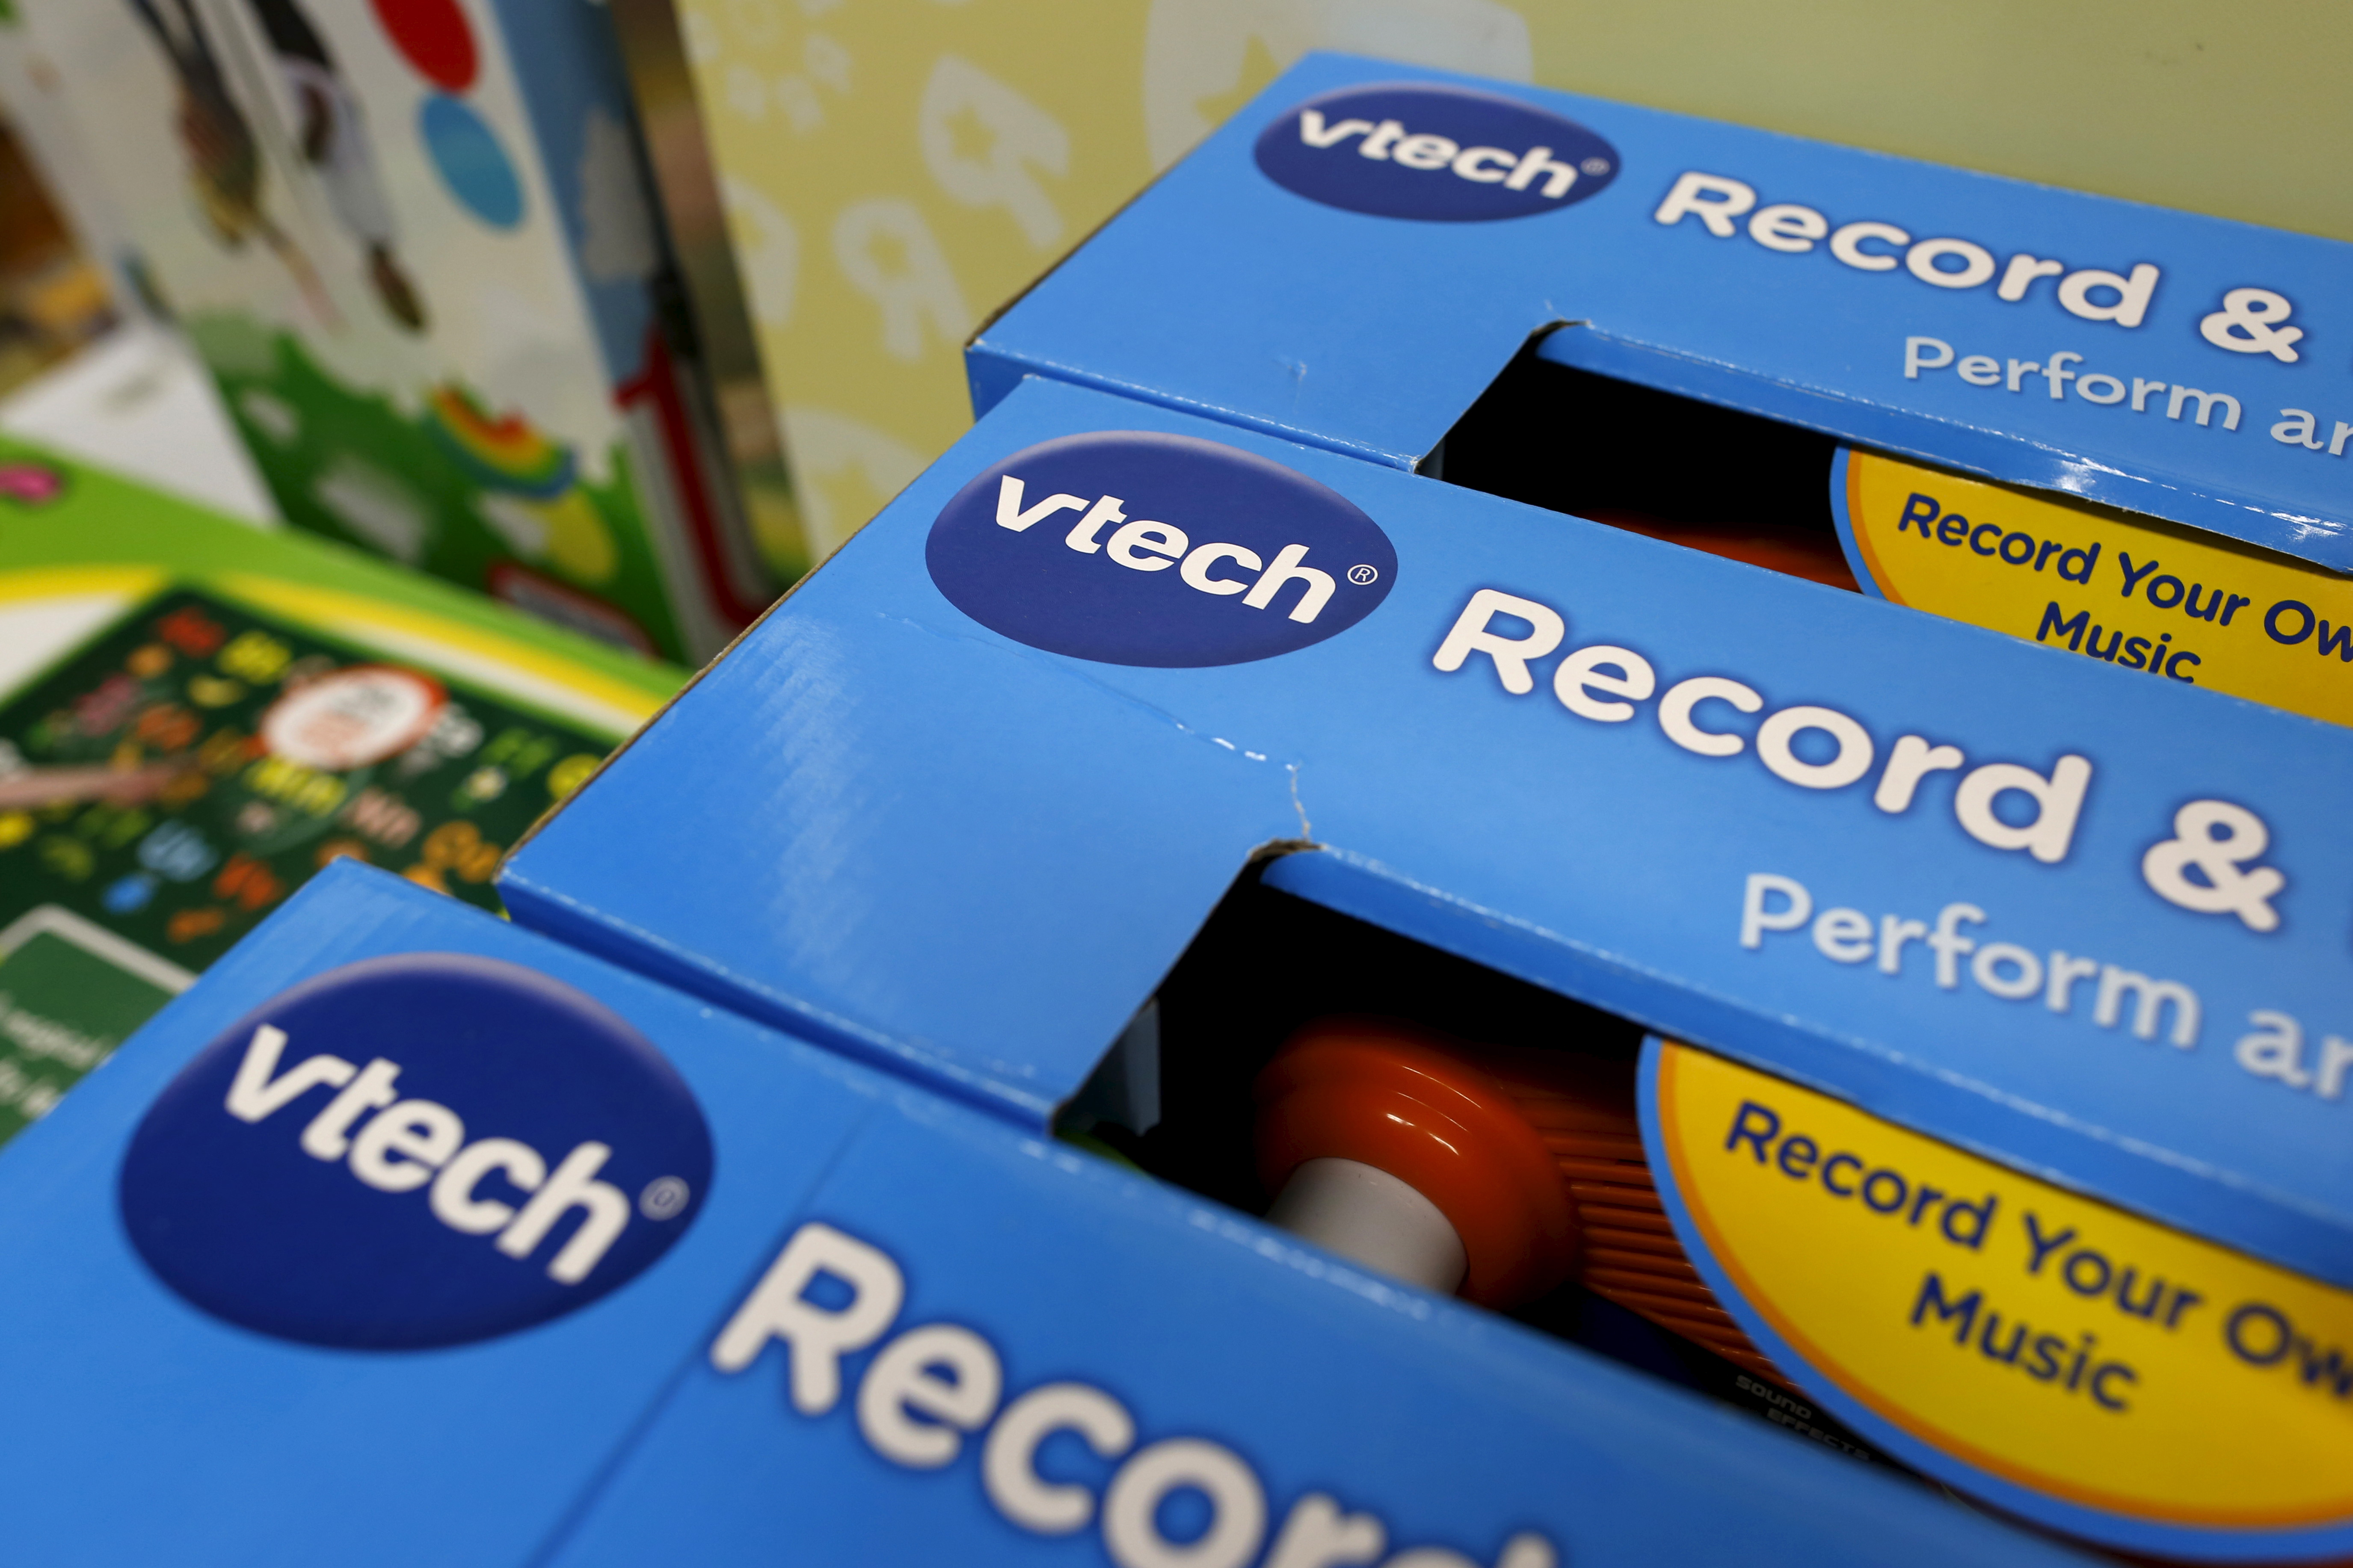 VTech's products are seen on display at a toy store in Hong Kong, China November 30, 2015.